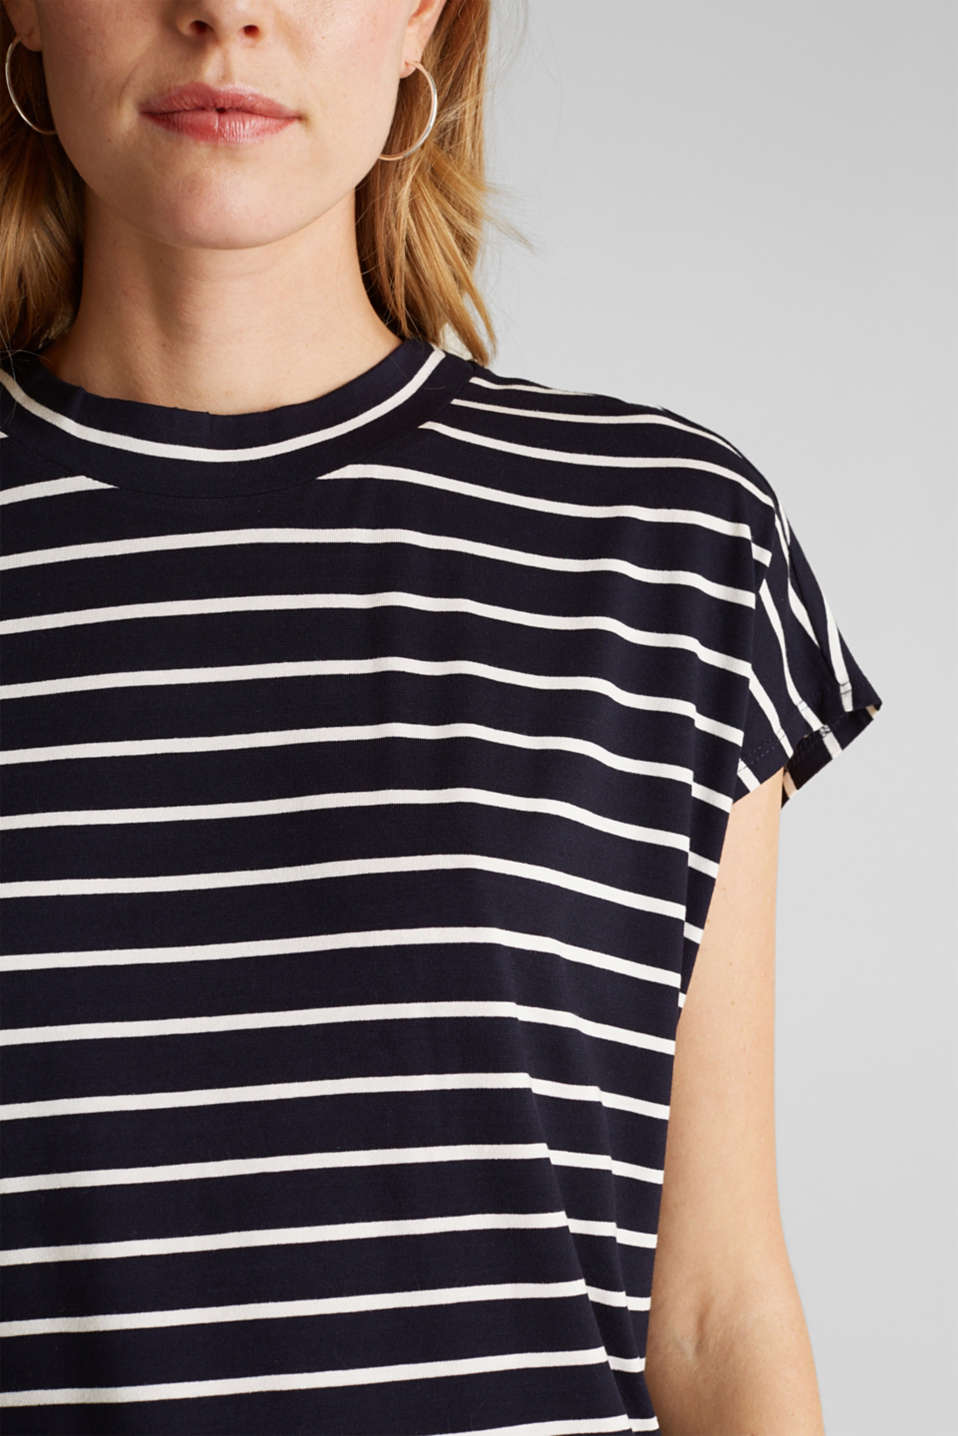 Stretch top with stripes, NAVY, detail image number 2